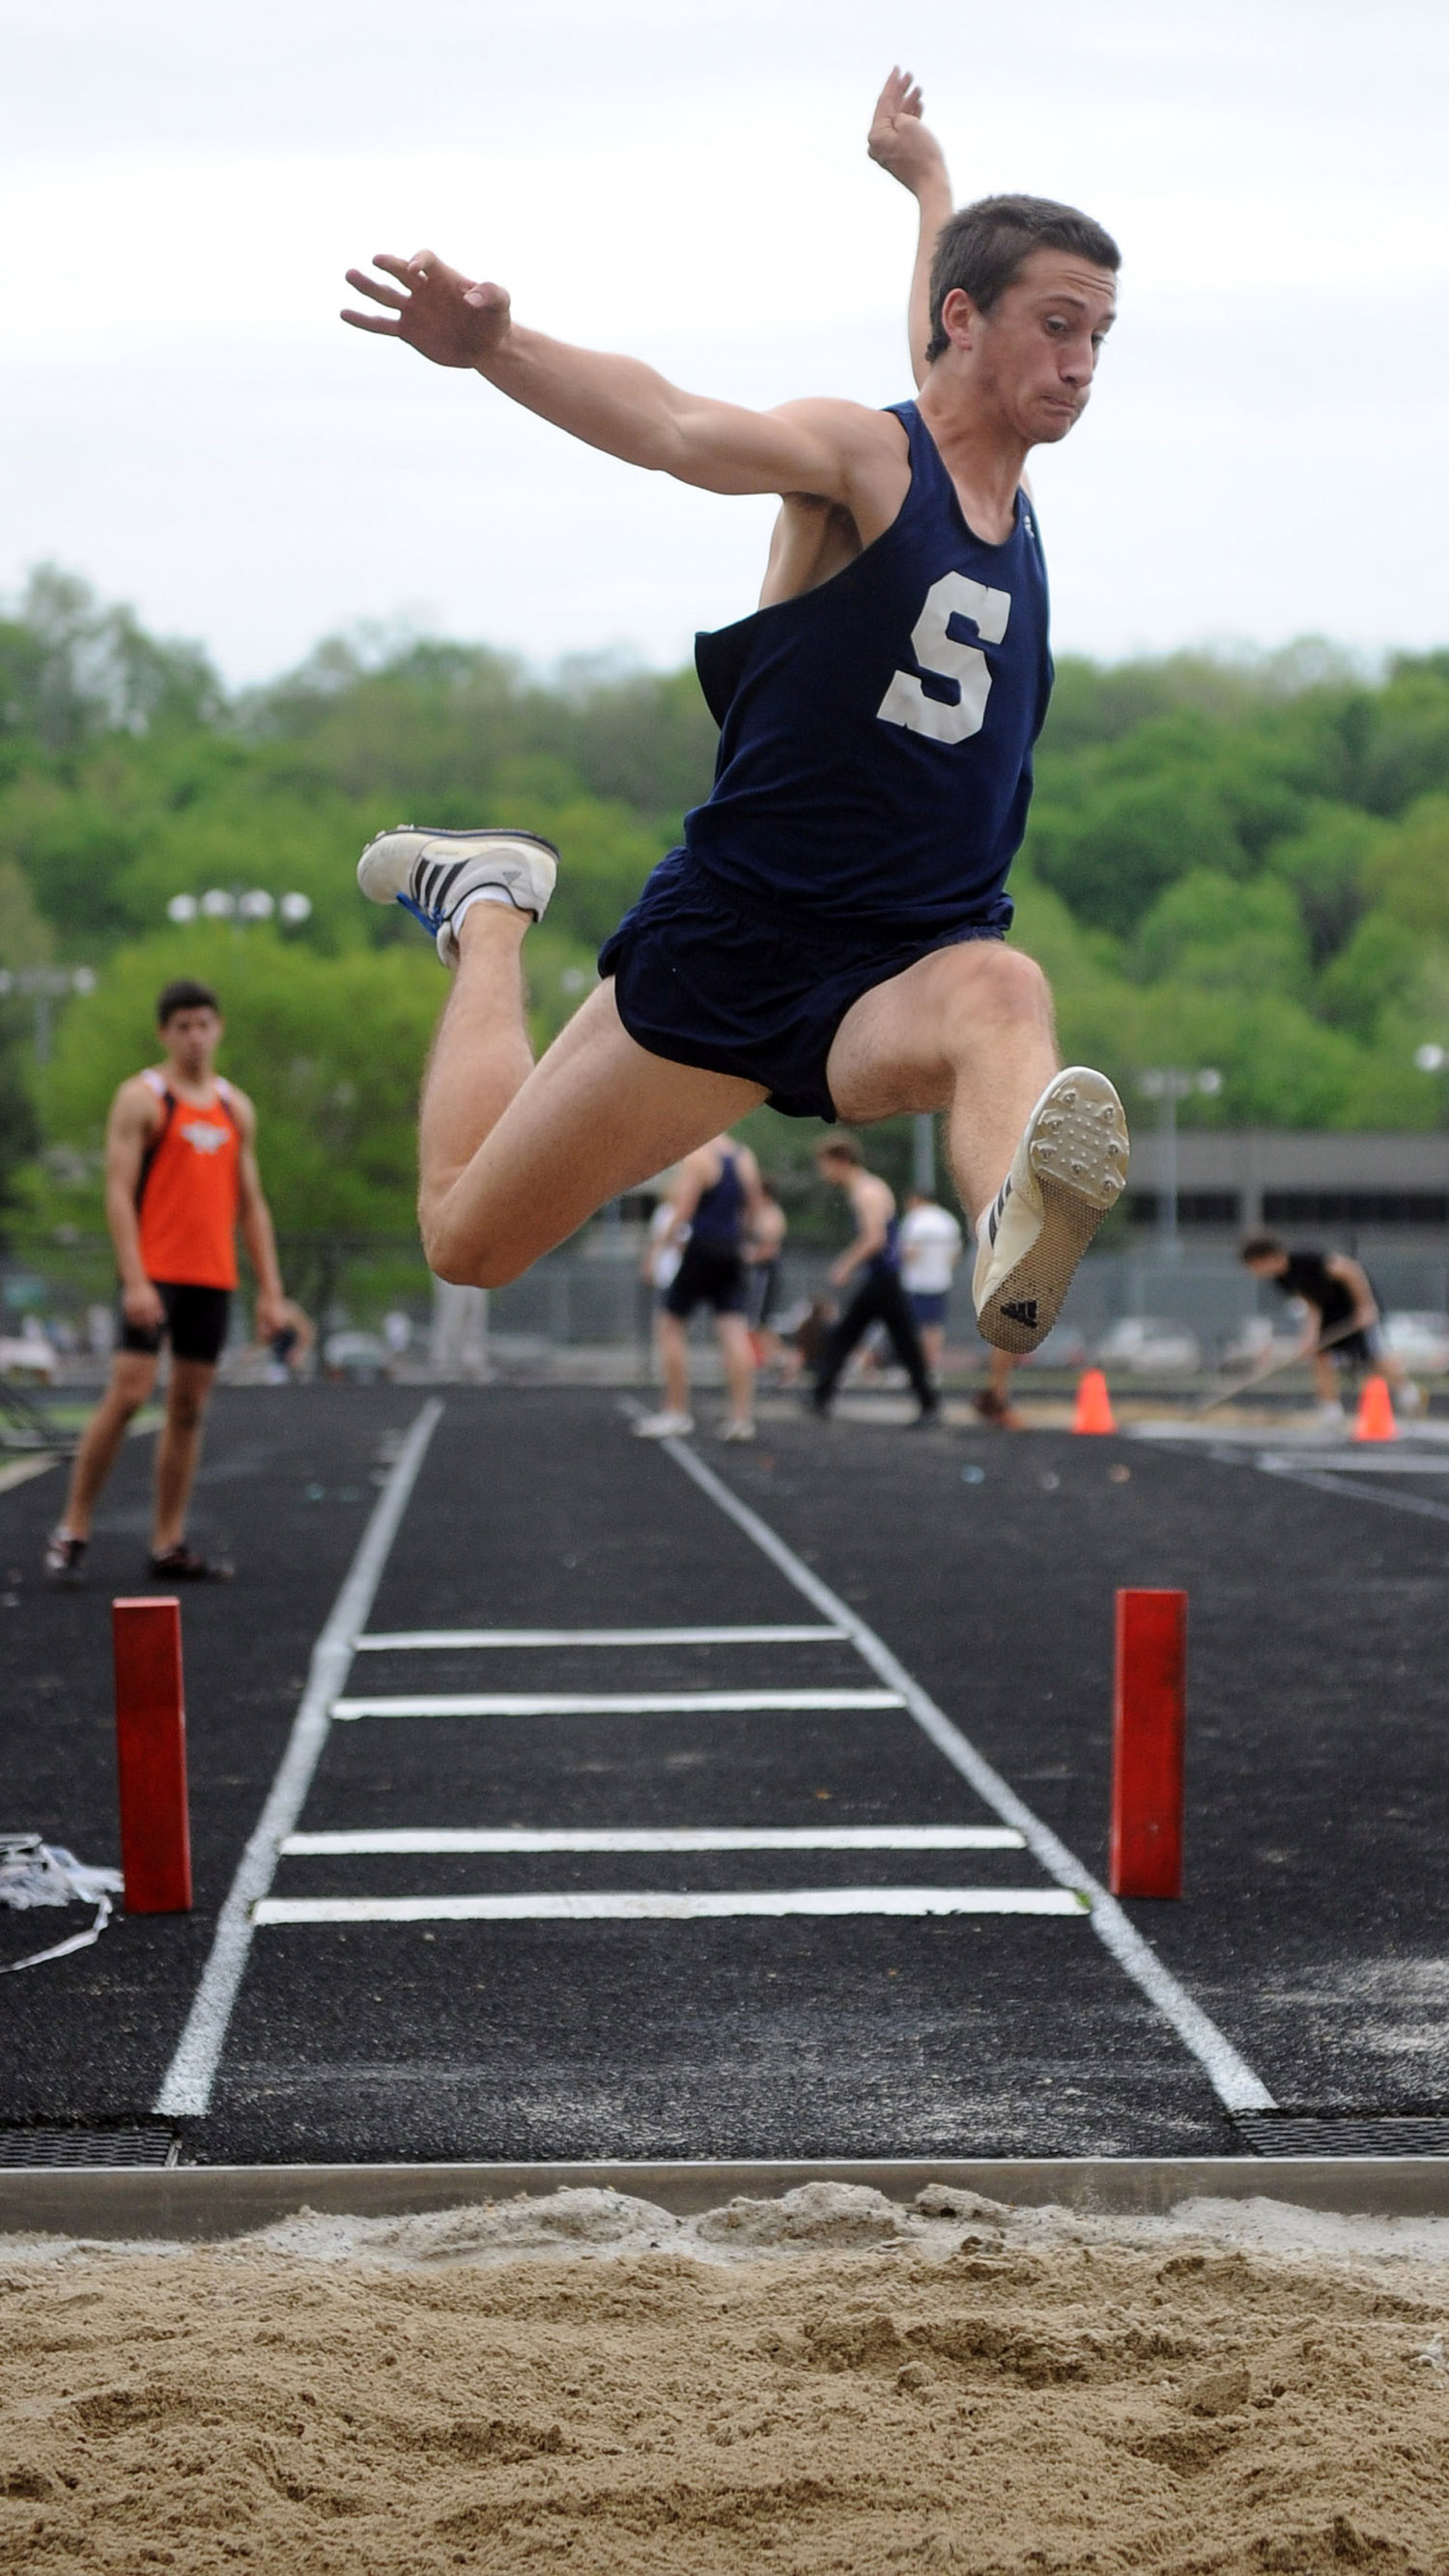 Dan Marriott competes in the long jump during a track meet at Wilton High School on May 19, 2011.